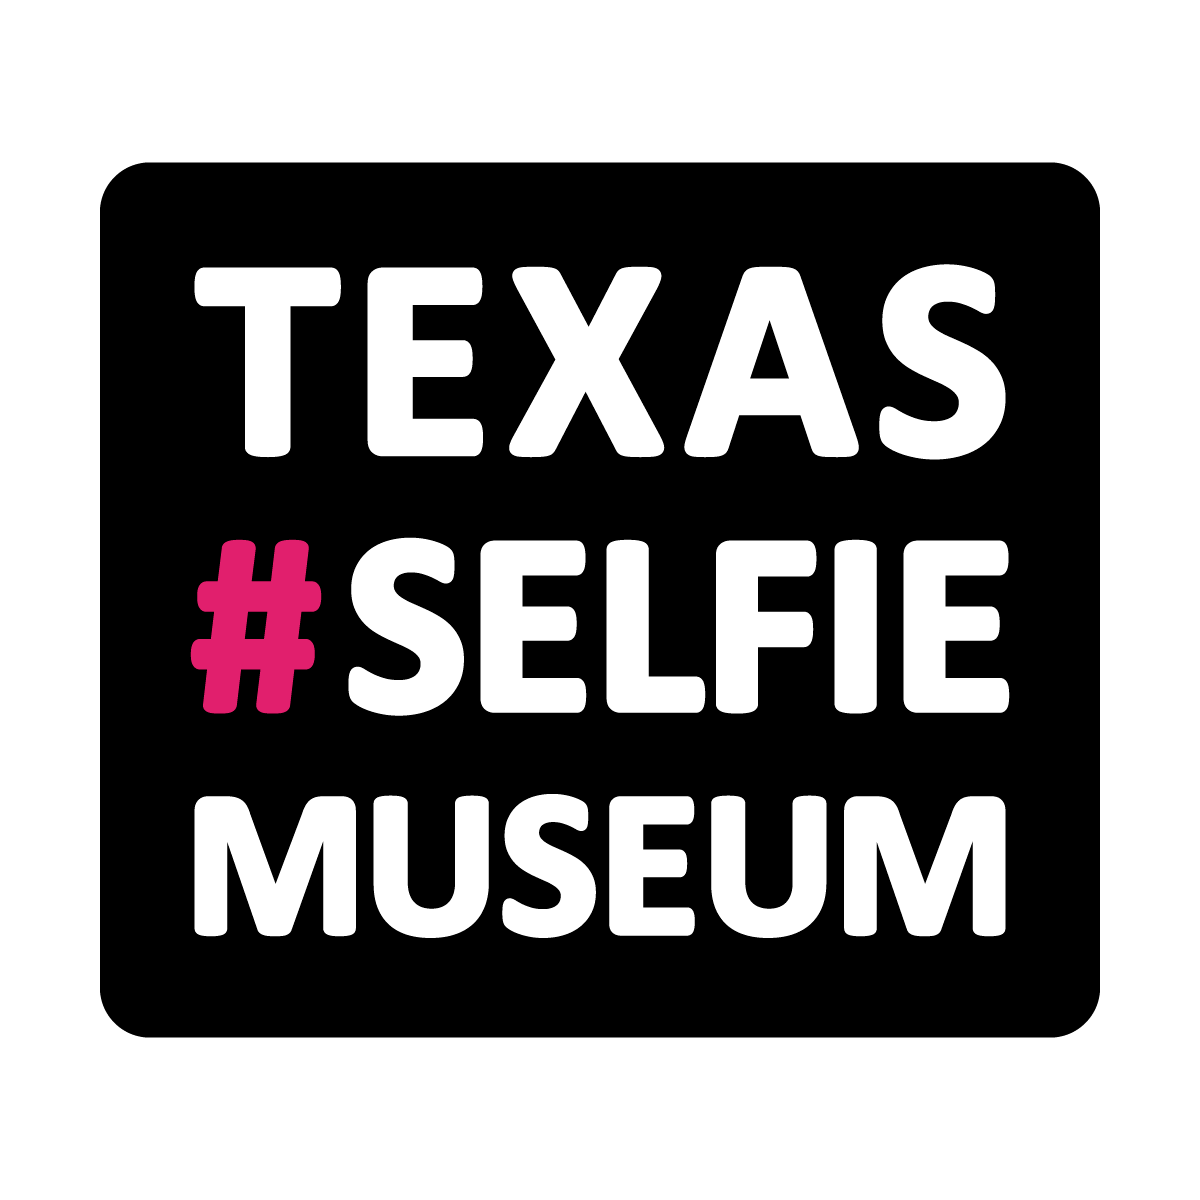 Announcing the Launch of the Texas Selfie Museum in San Antonio, Promises a Thrilling Photo and Video Experience